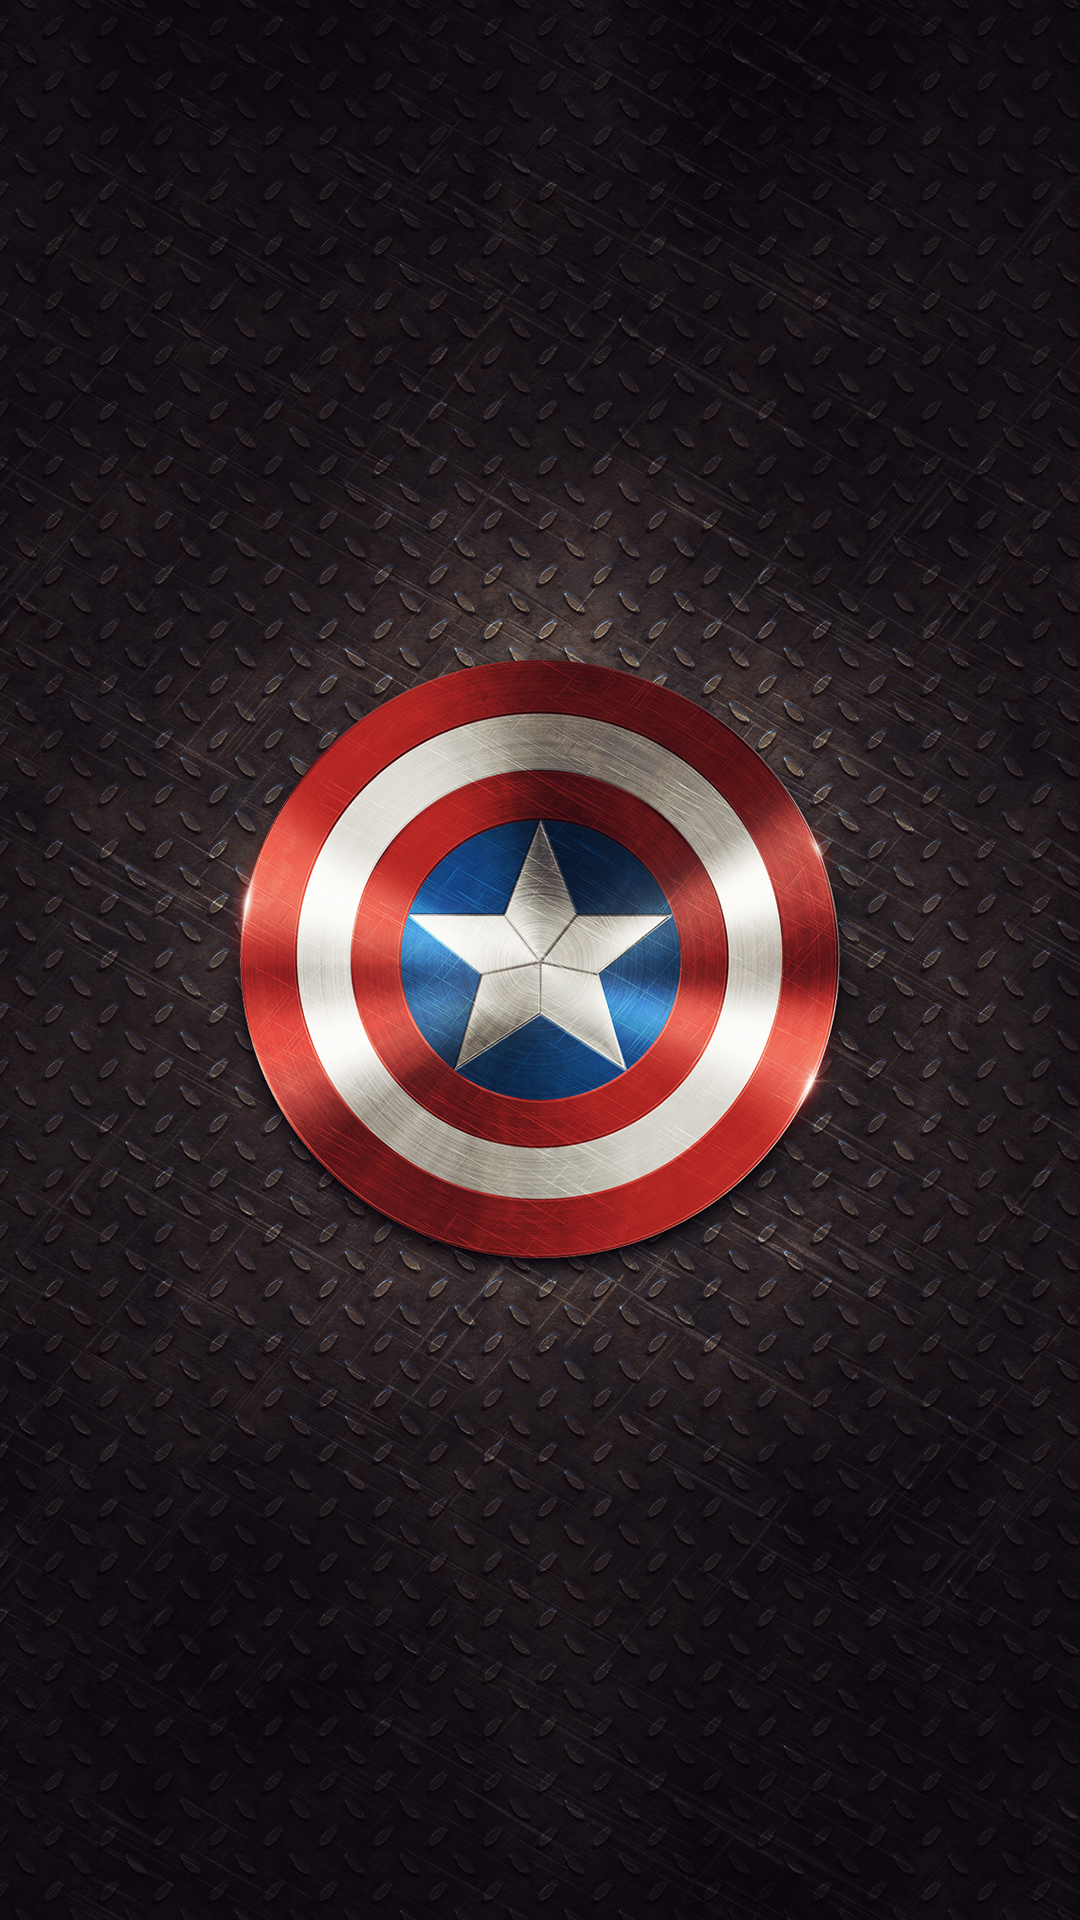 Captains Shield2jpg 1080x1920